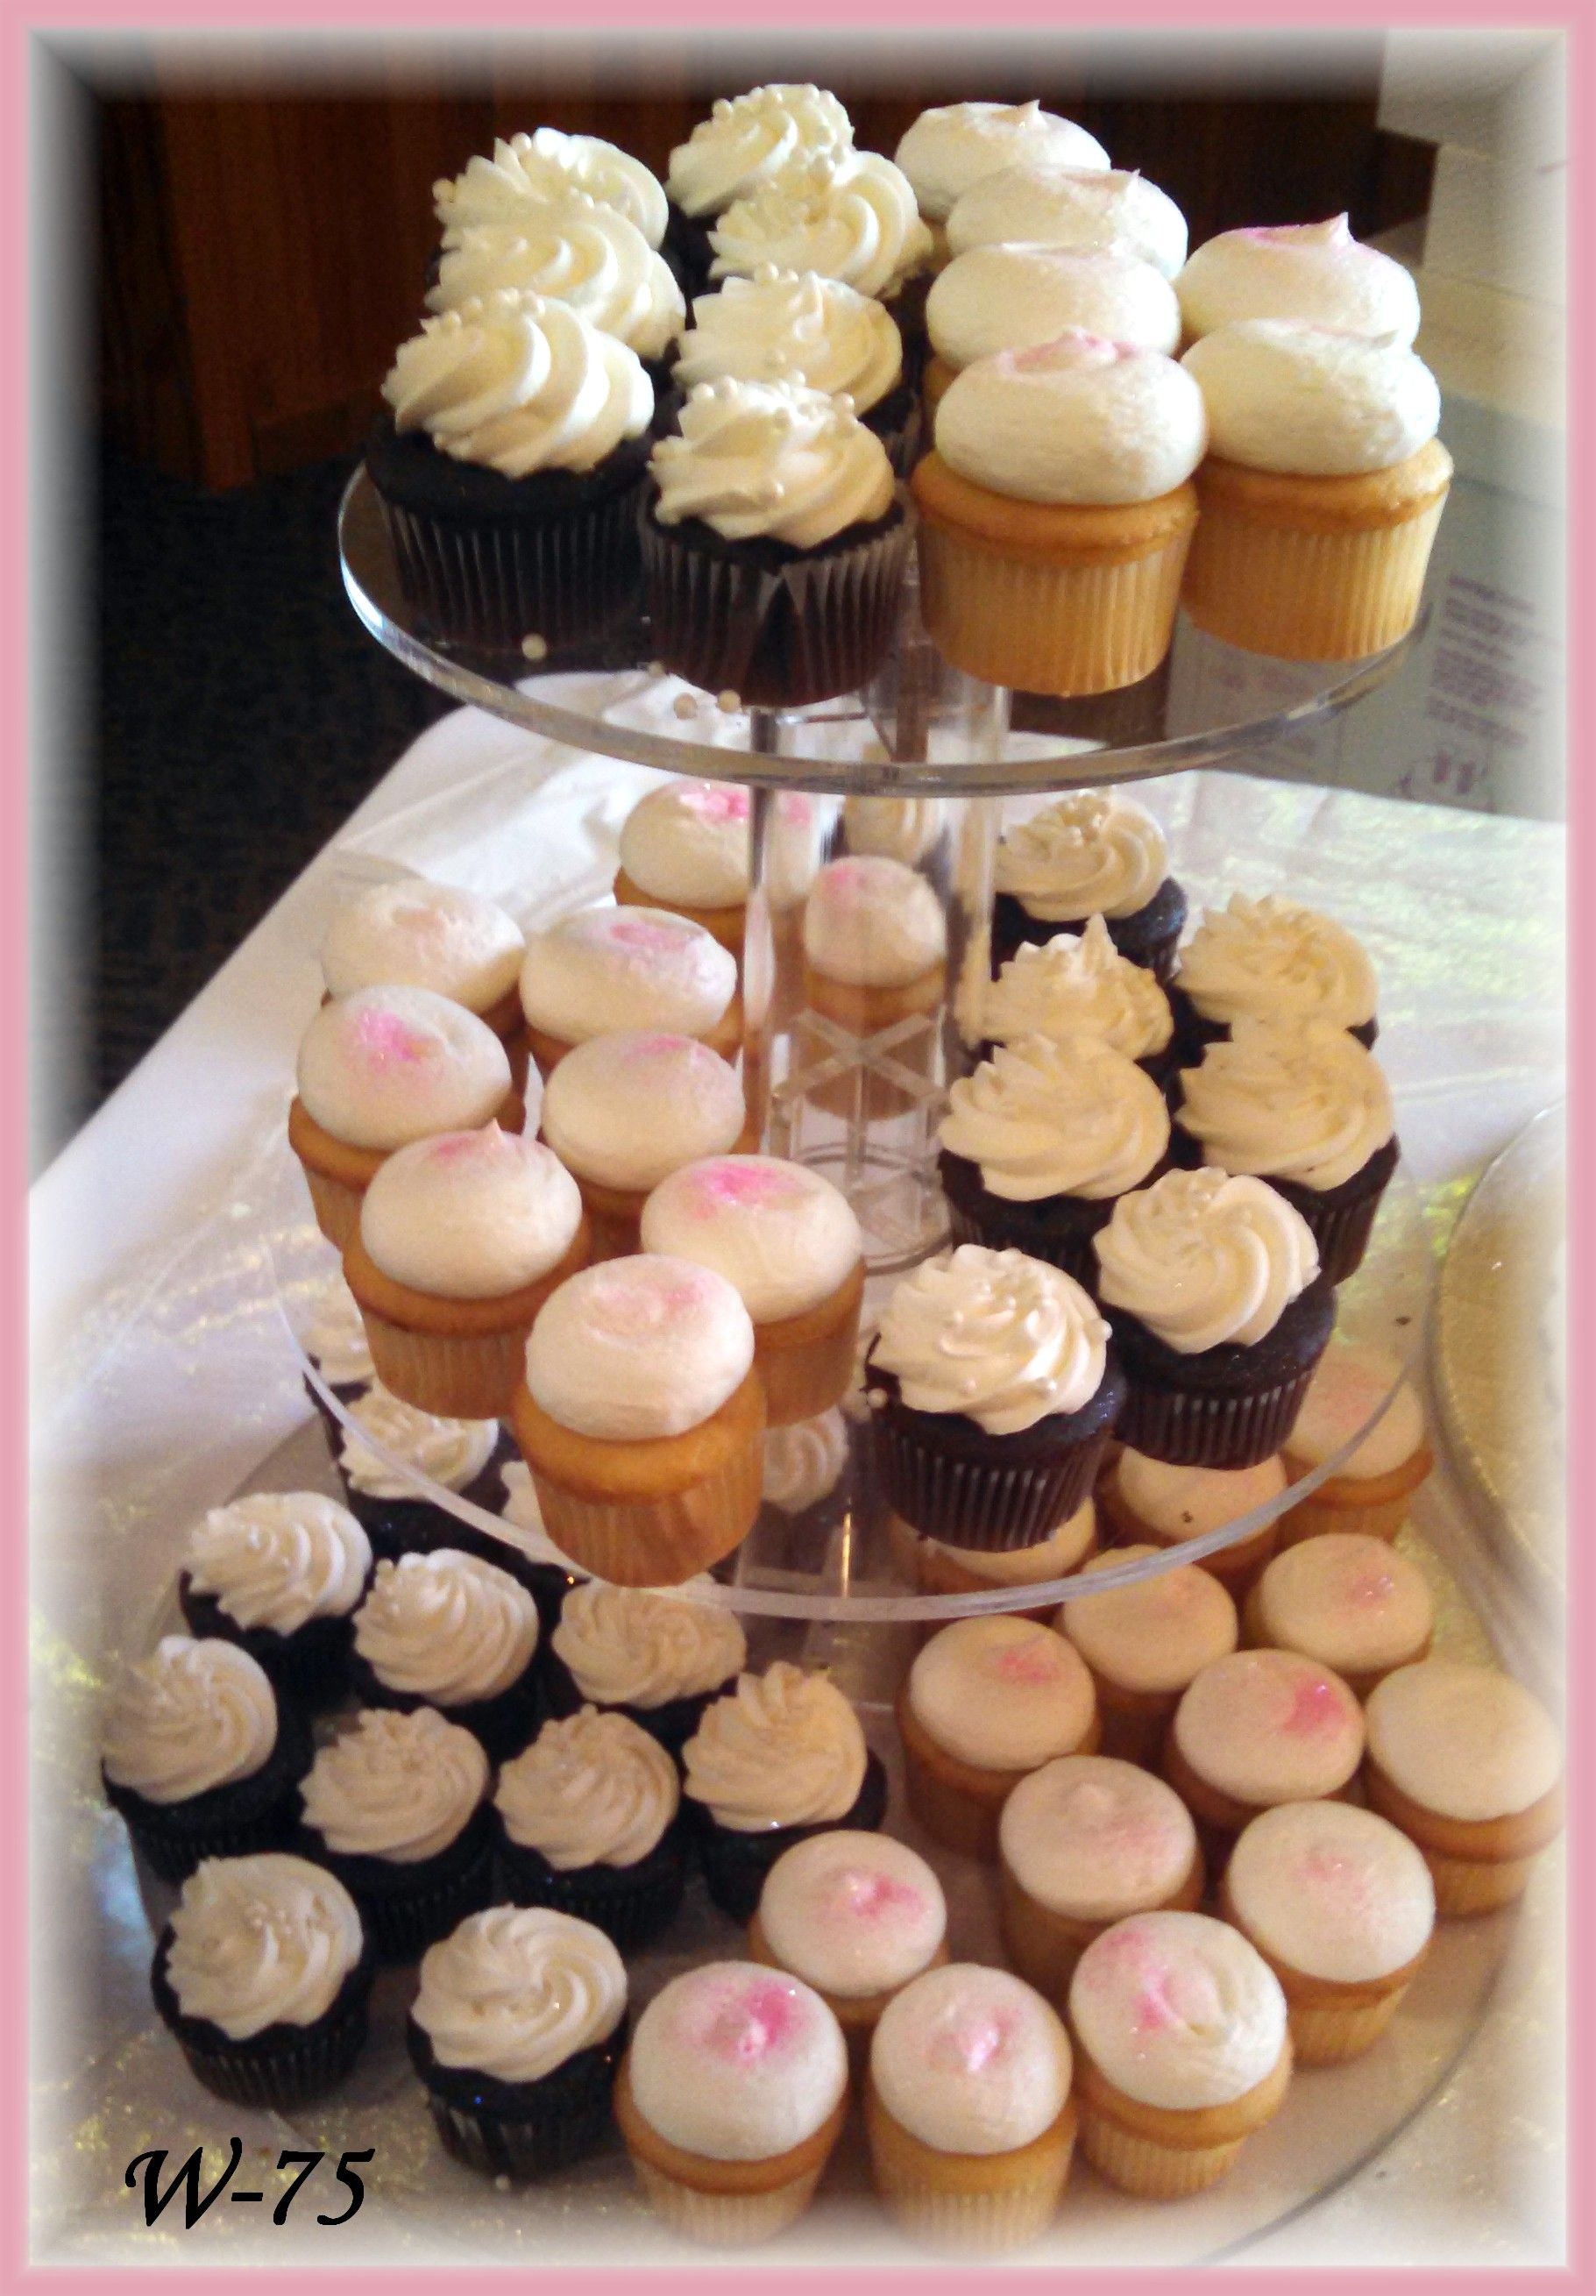 Mini Wedding Cupcakes With Pearls And Glitter By Rush City Bakery